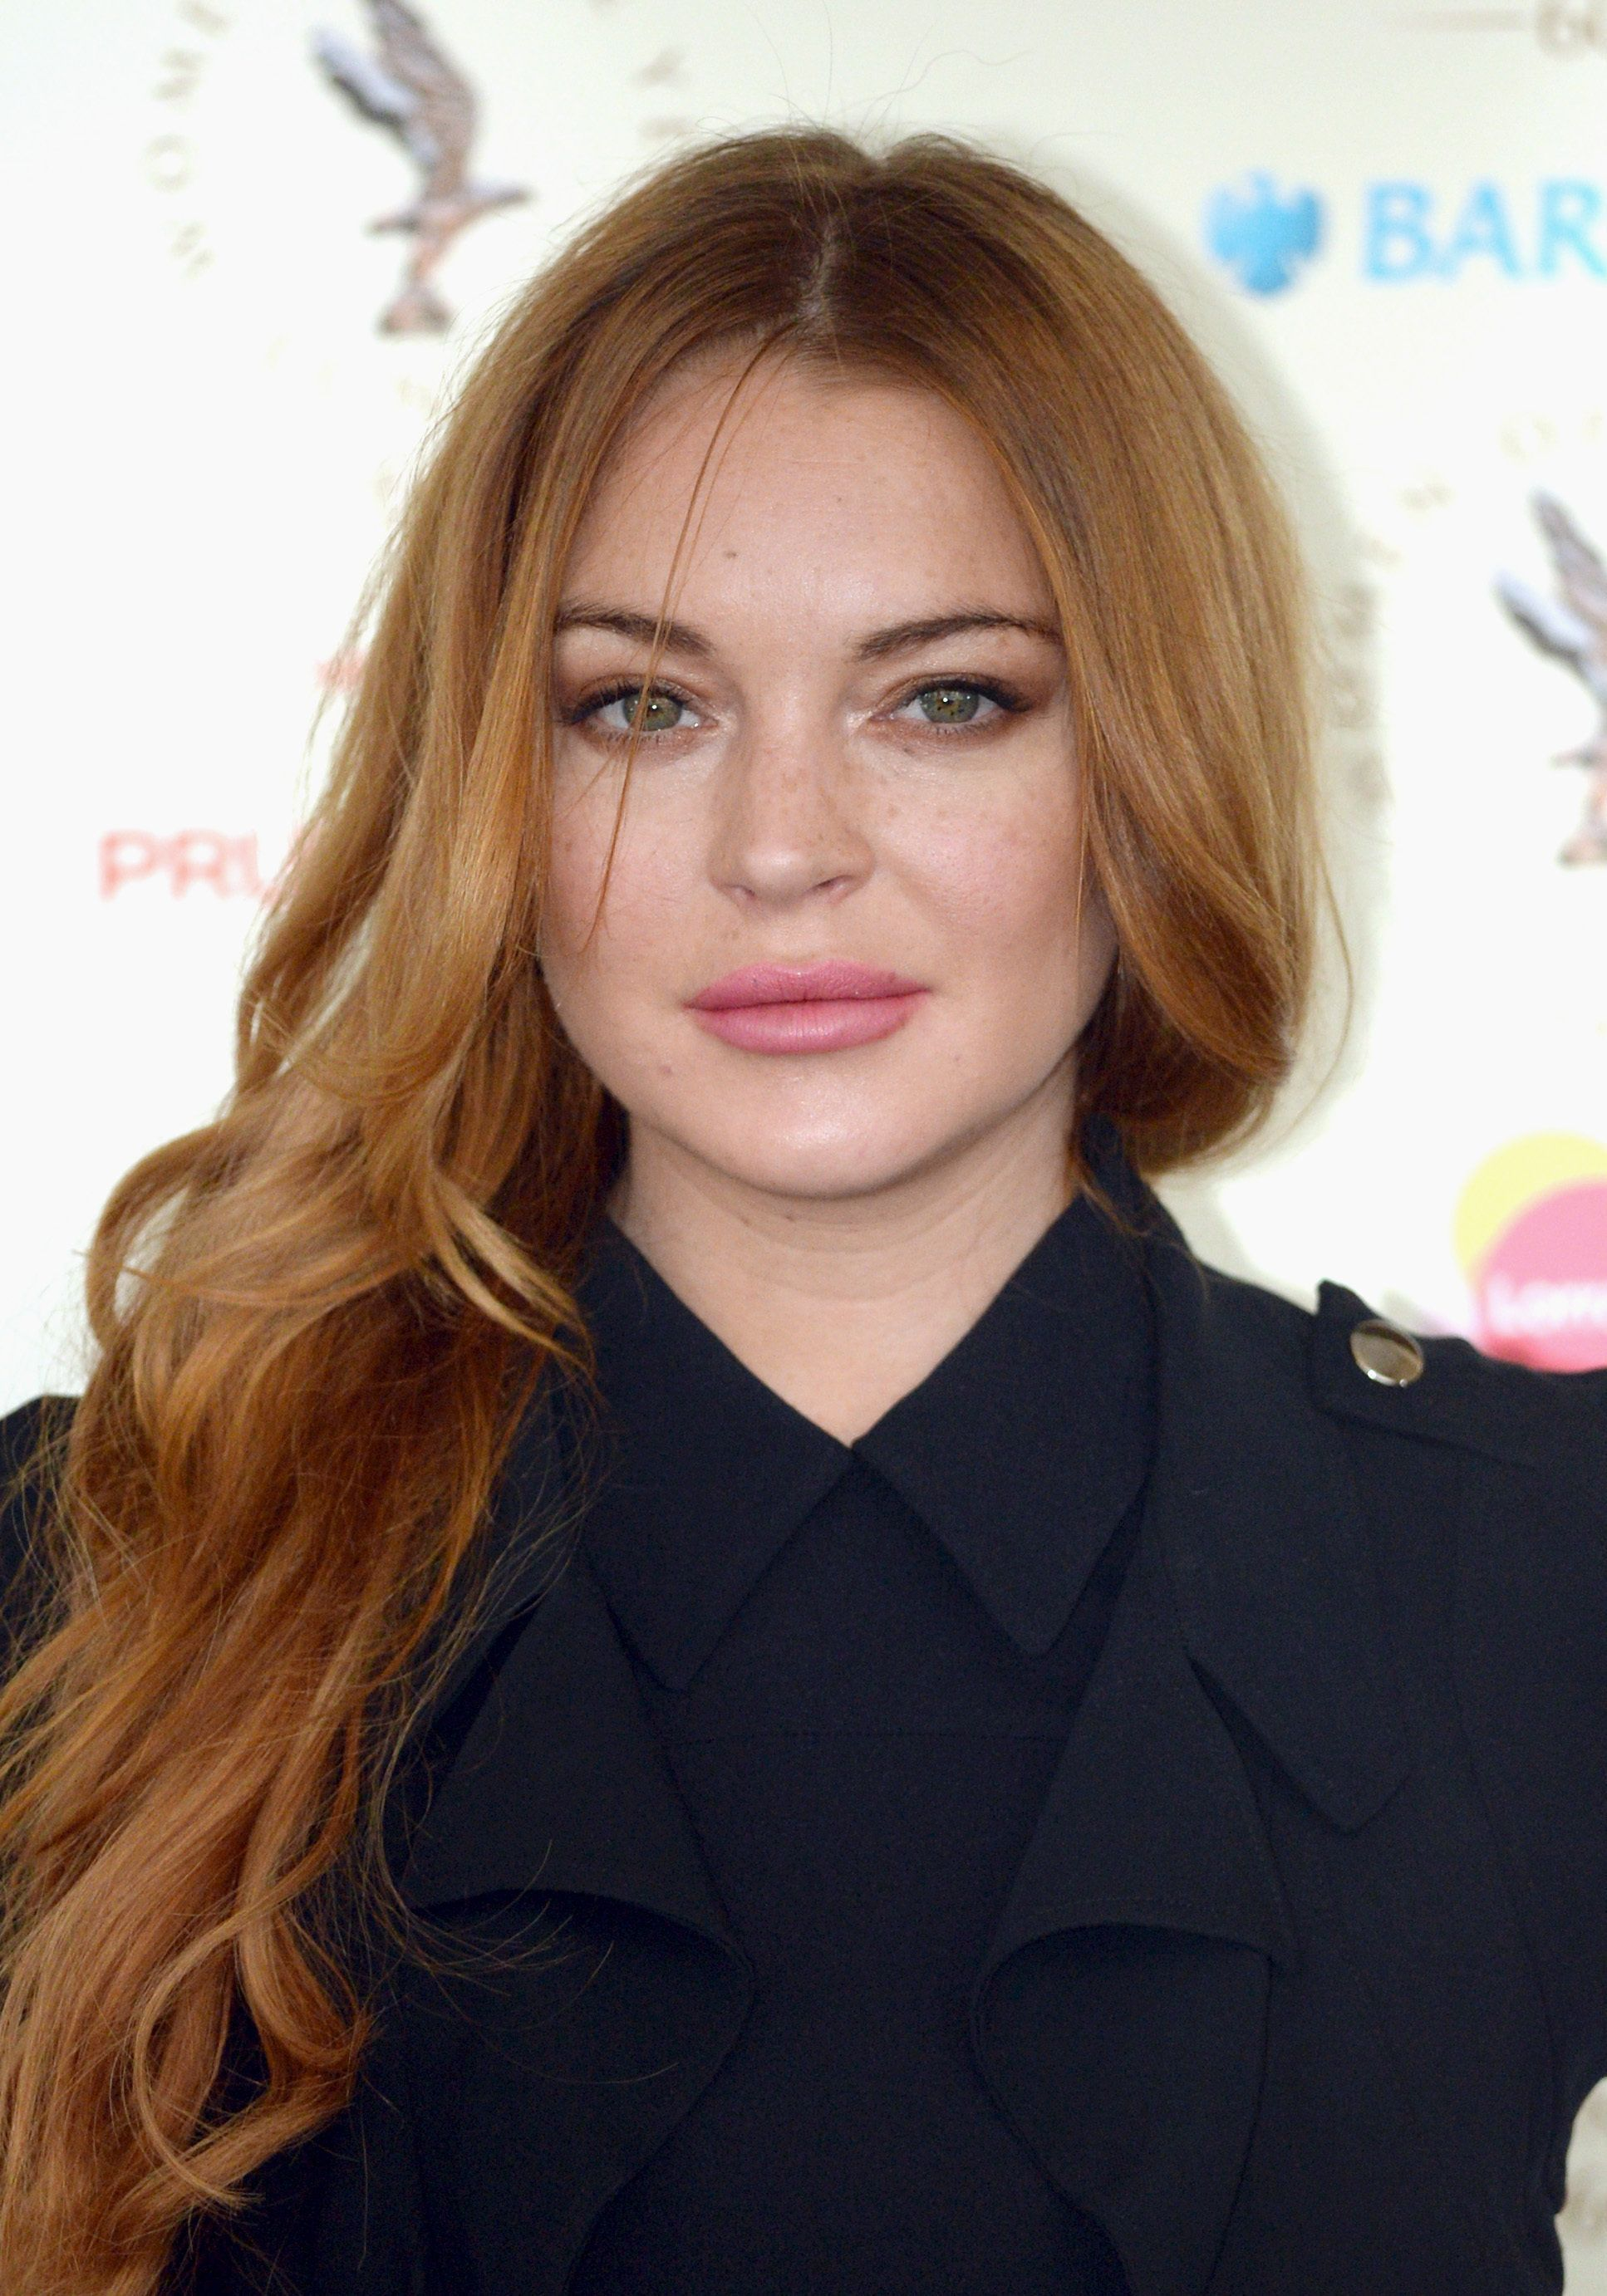 Lindsay Lohan Faces Backlash After Saying Me Too Movement 'Makes Women Look